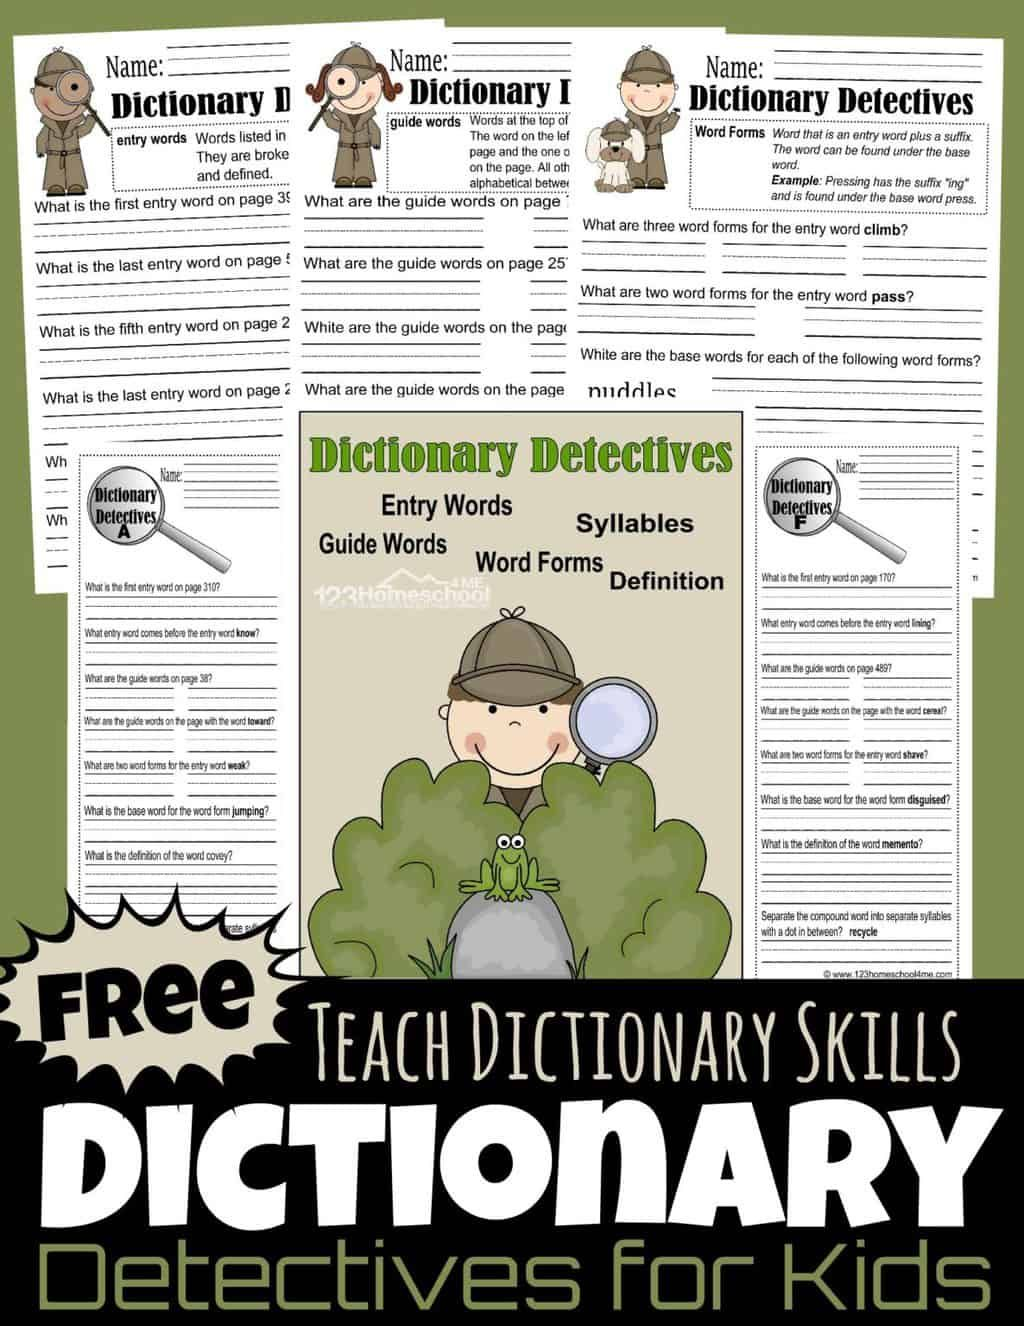 small resolution of FREE Dictionary Detective Worksheets for Kids   Dictionary skills